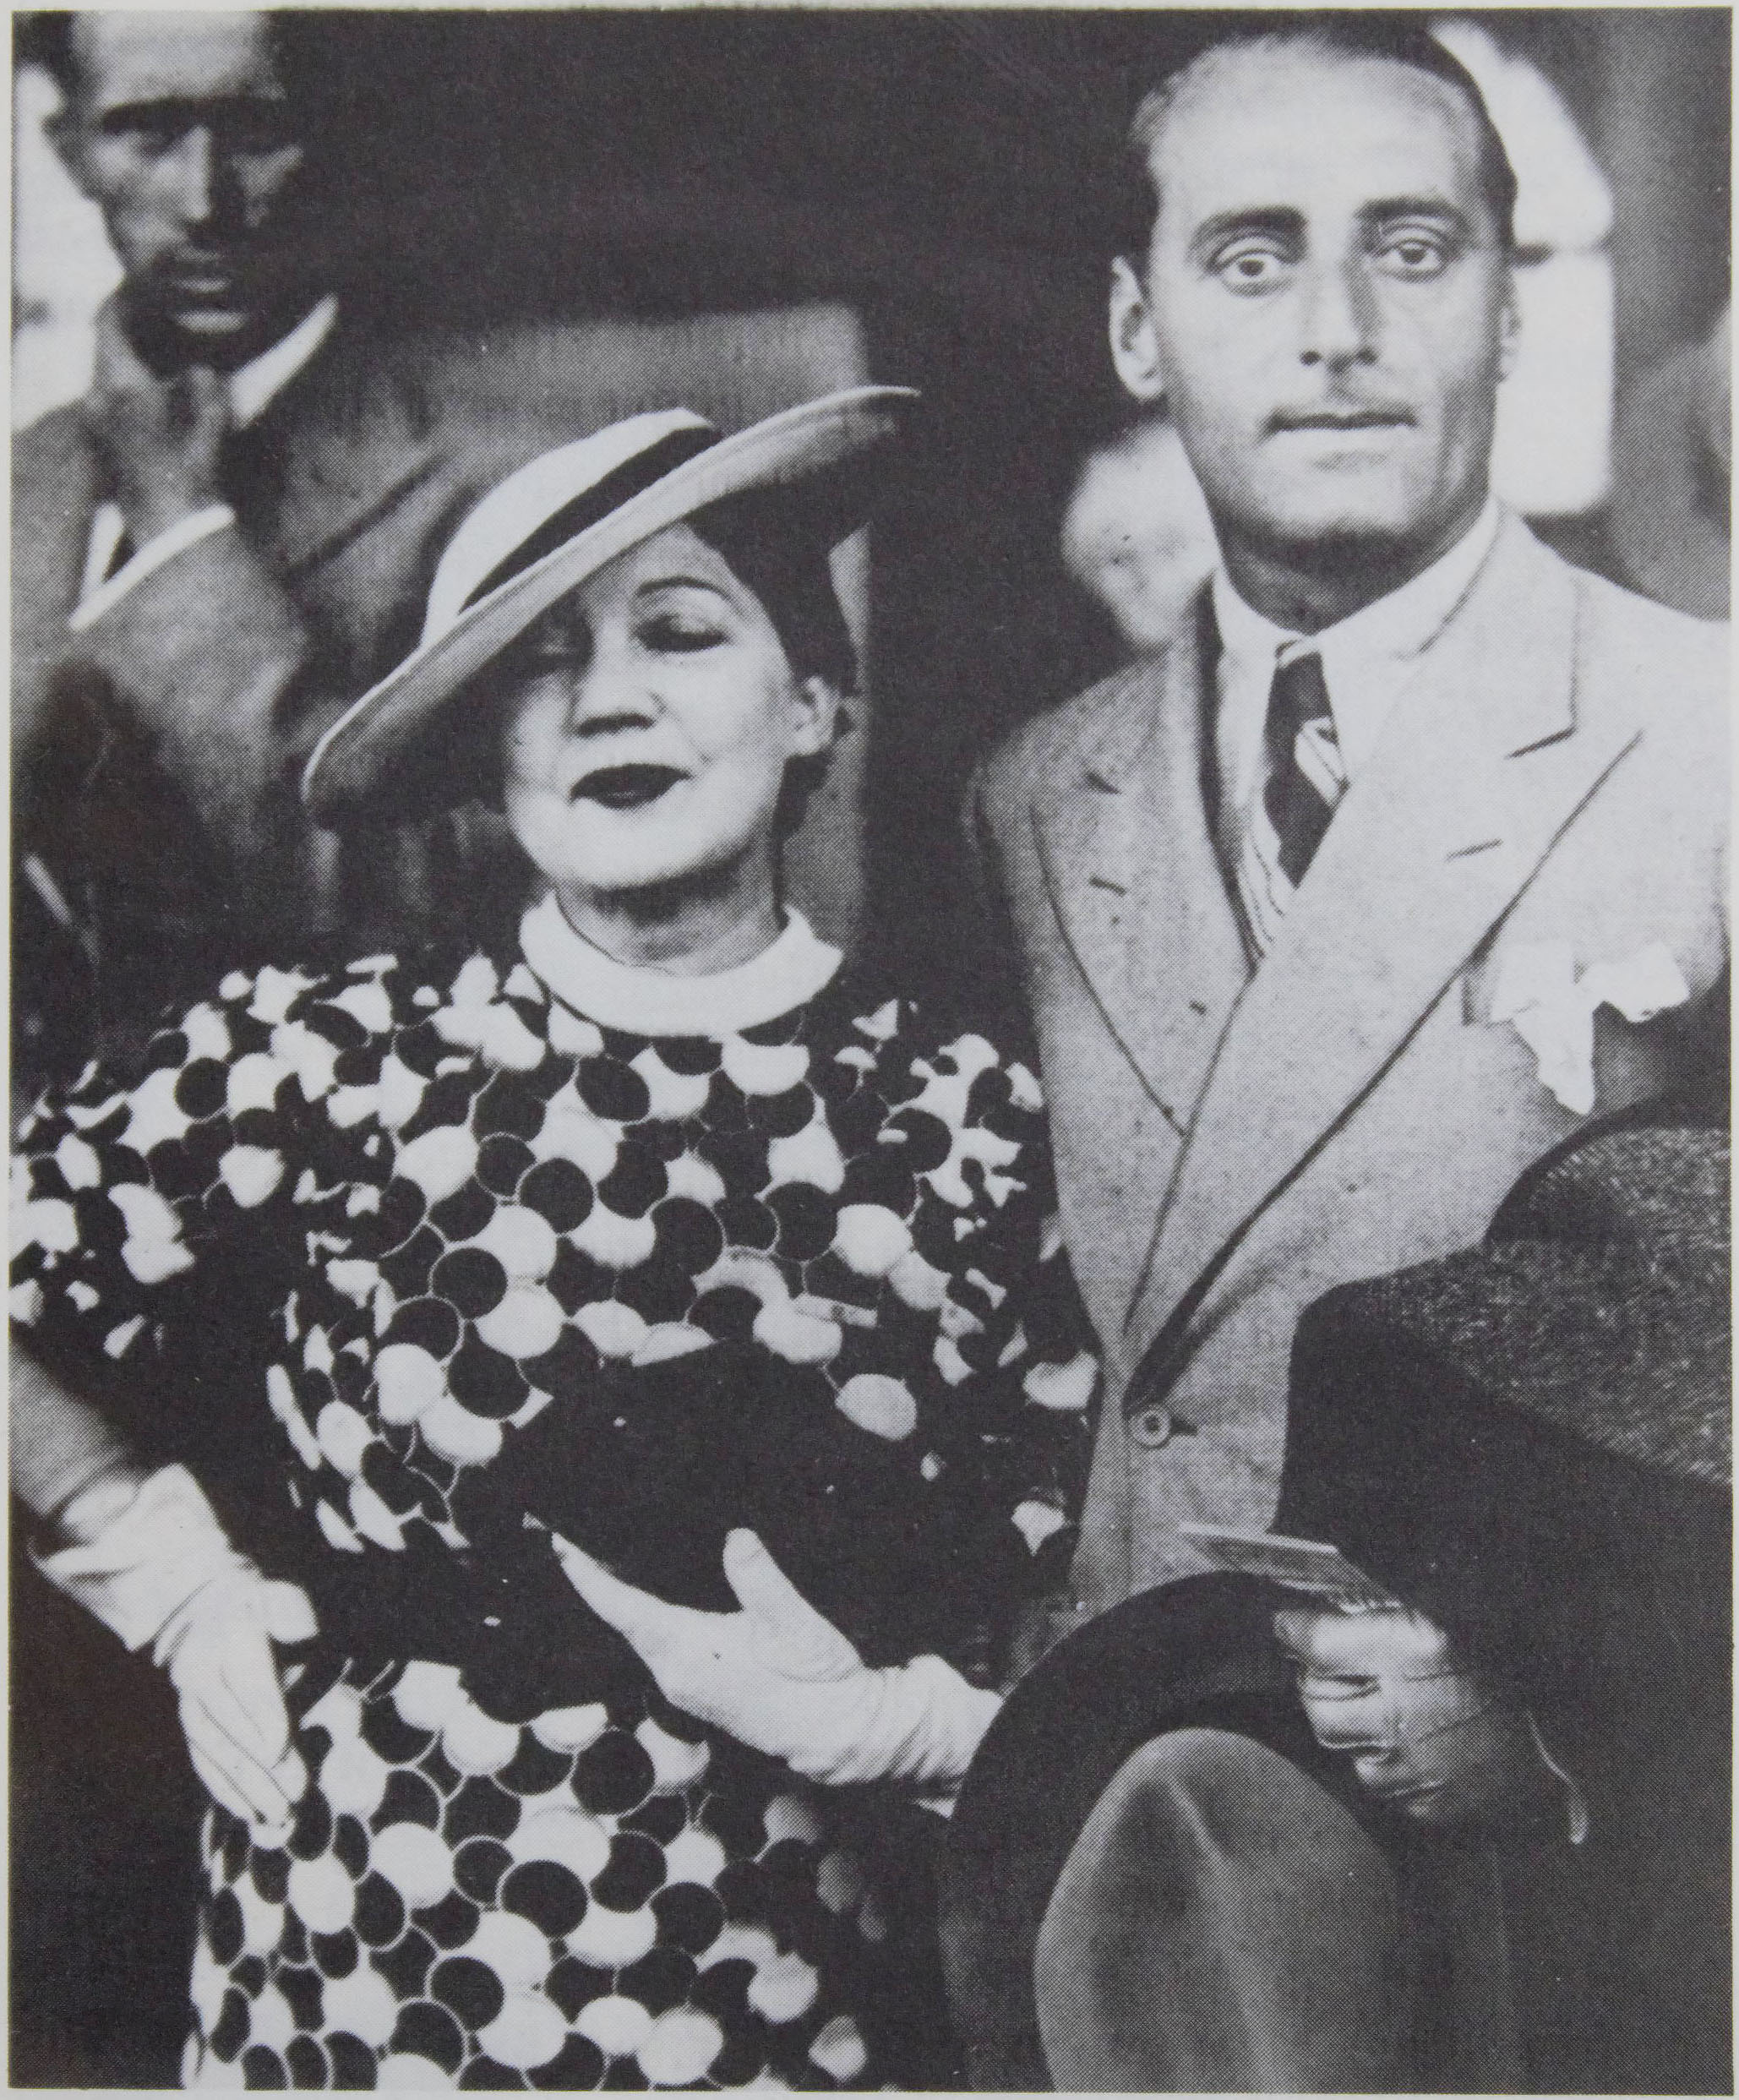 The photo, which takes up the whole page along with the                      caption, is credited to Politiken Press. Gerda Wegener and husband Fernando                      Porta fill the frame of the photo, which seems to be outside, and they are                      dressed for going out.